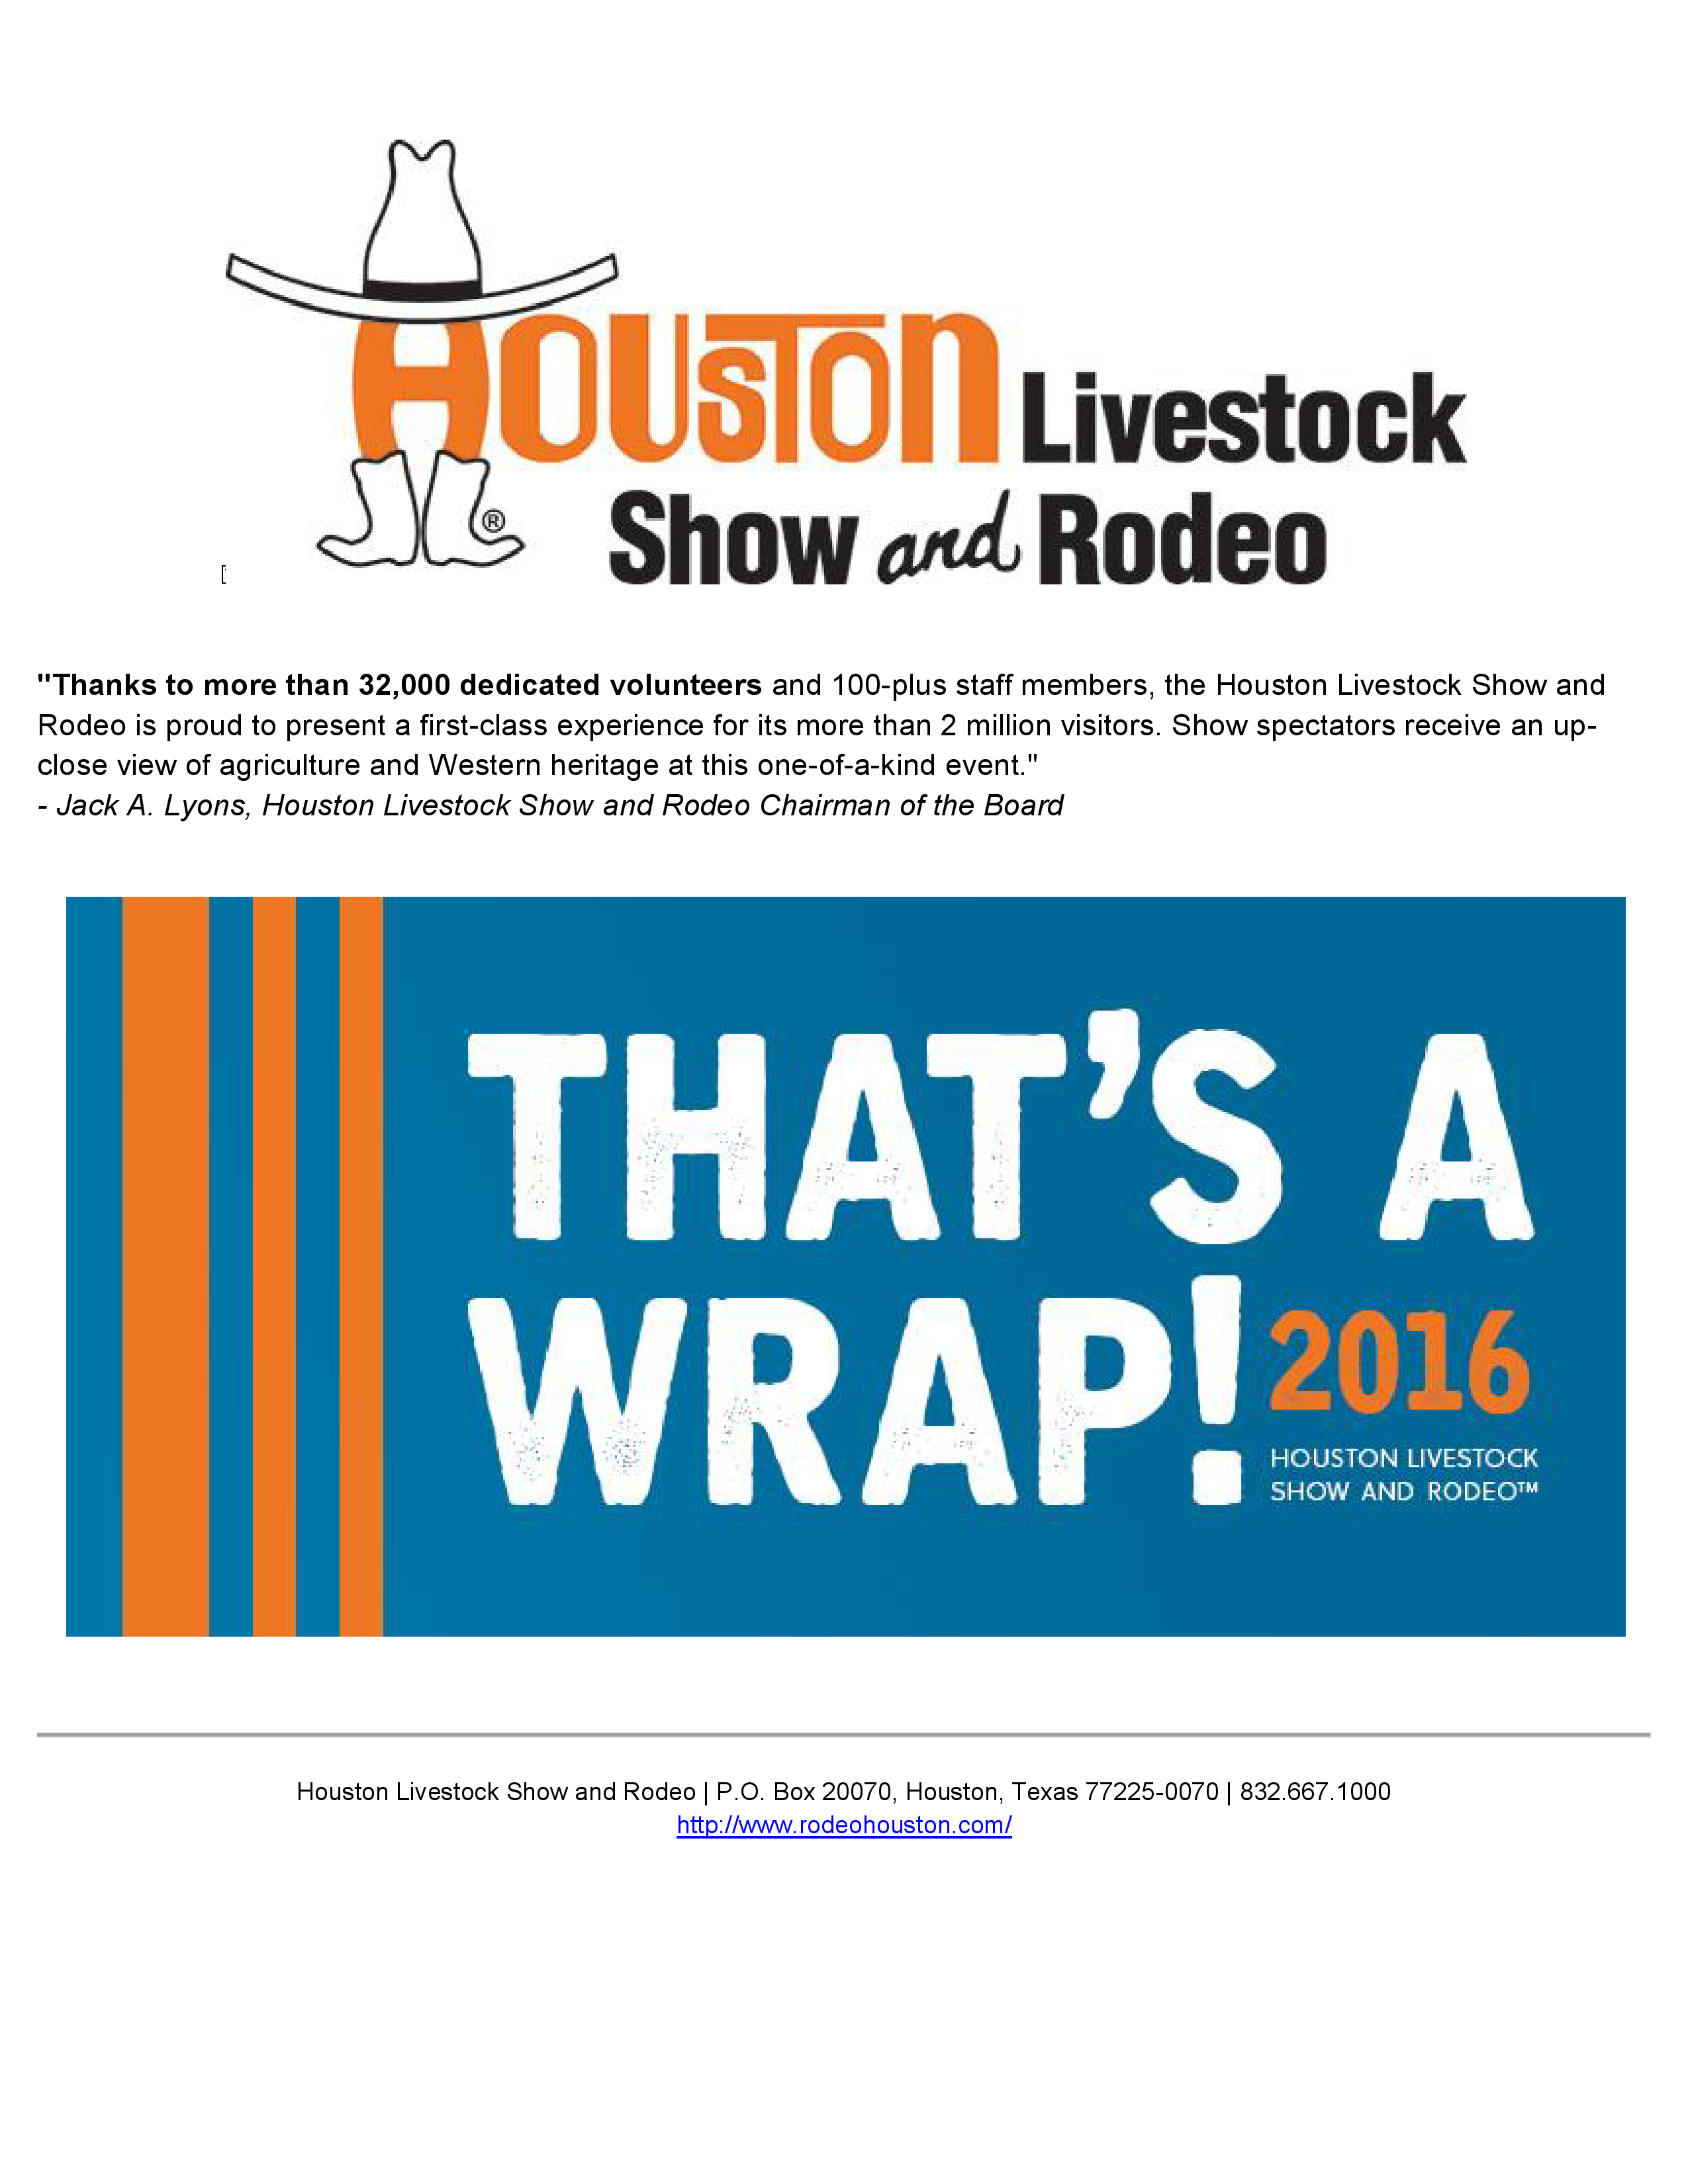 2016 Houston Livestock Show and Rodeo